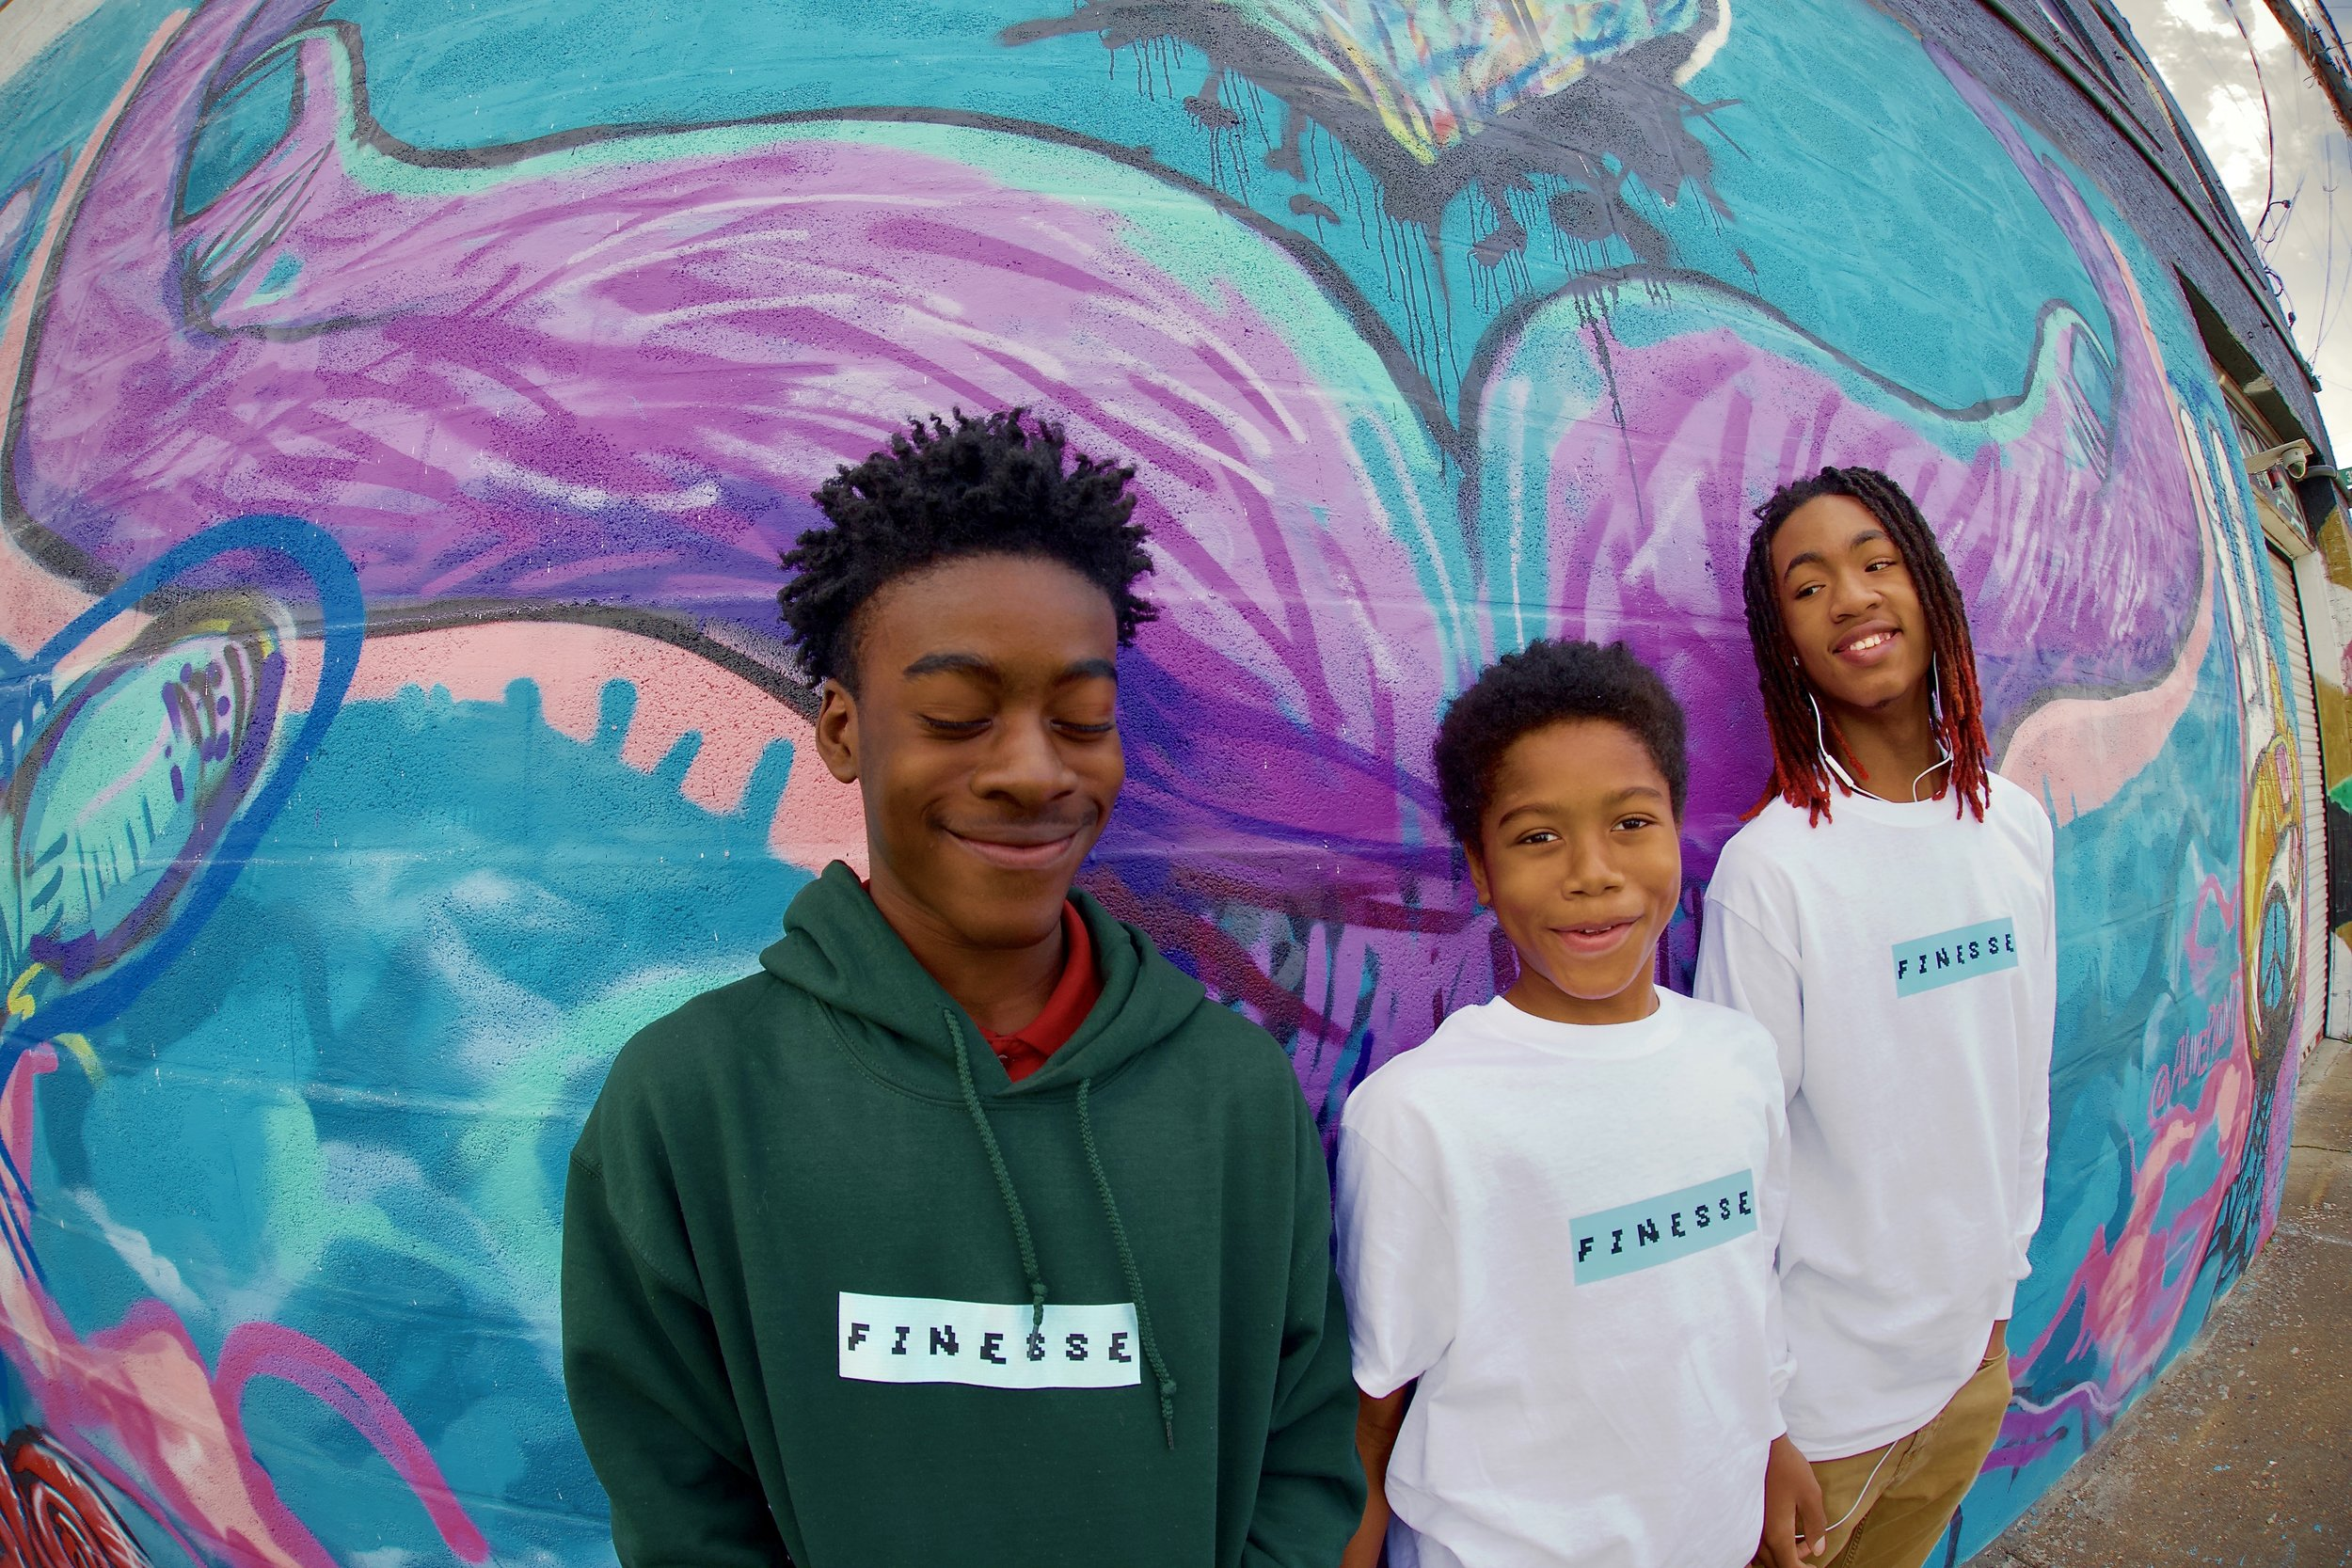 East Lake students modeling merch they created for their original brand 'Finesse'. Photos by East Lake students.